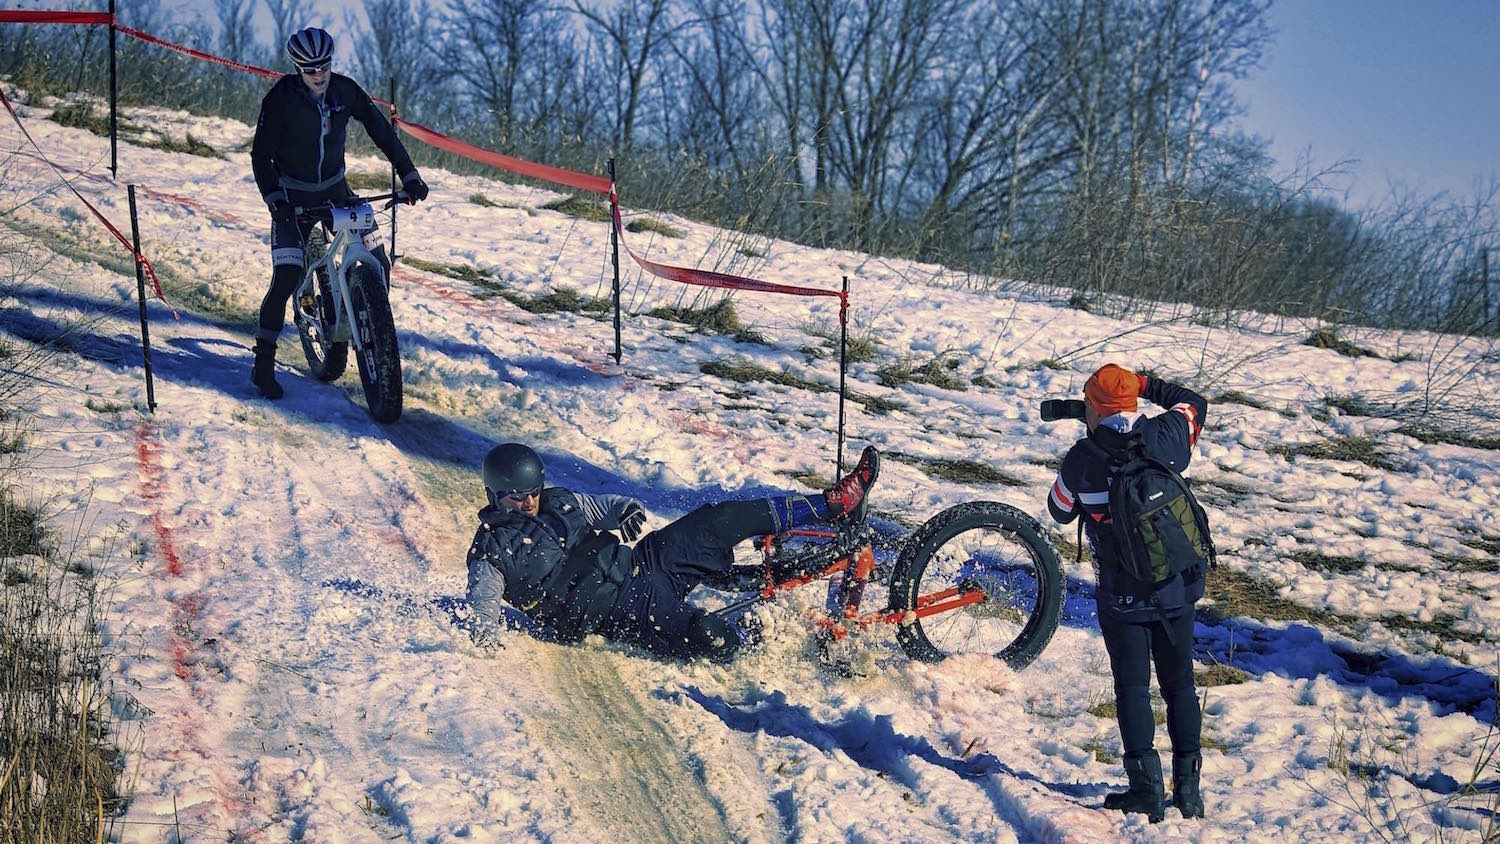 A fat bike crash on the slippery descent of the Fat Cupid Classic.